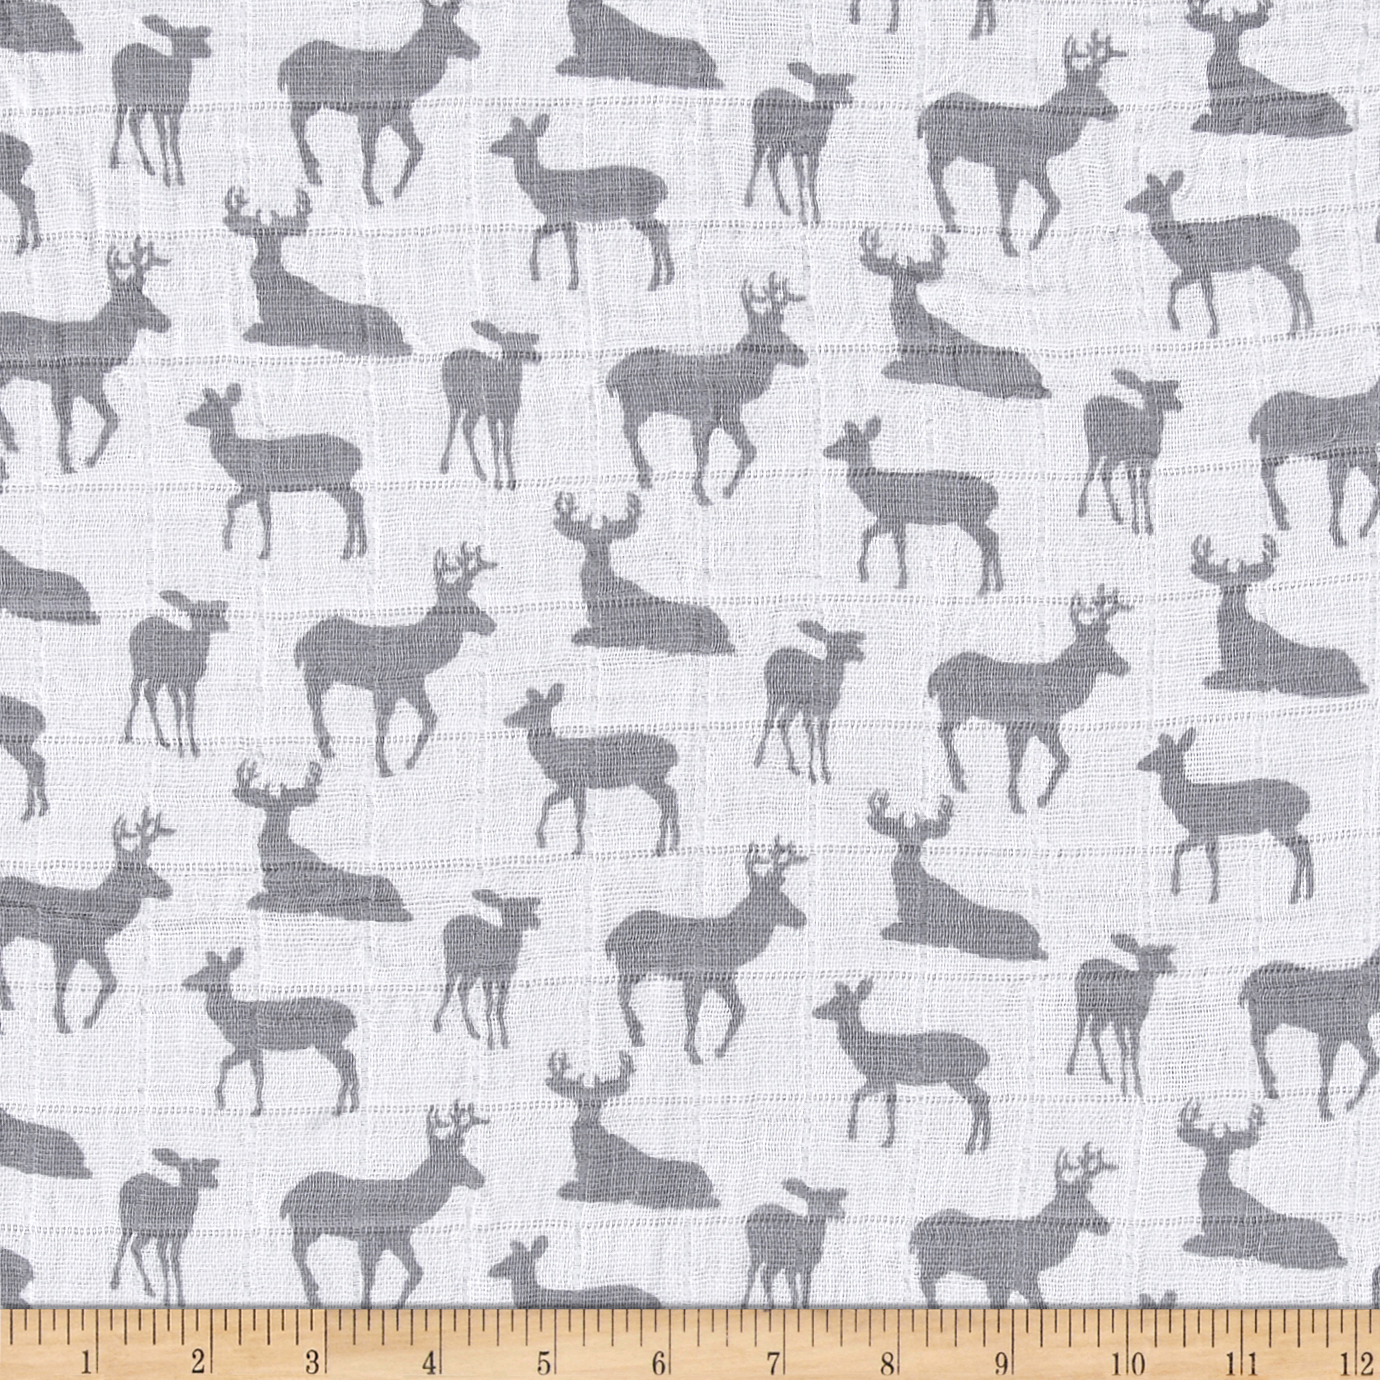 Image of Shannon Premier Prints Embrace Double Gauze Deer To Me Steel Fabric